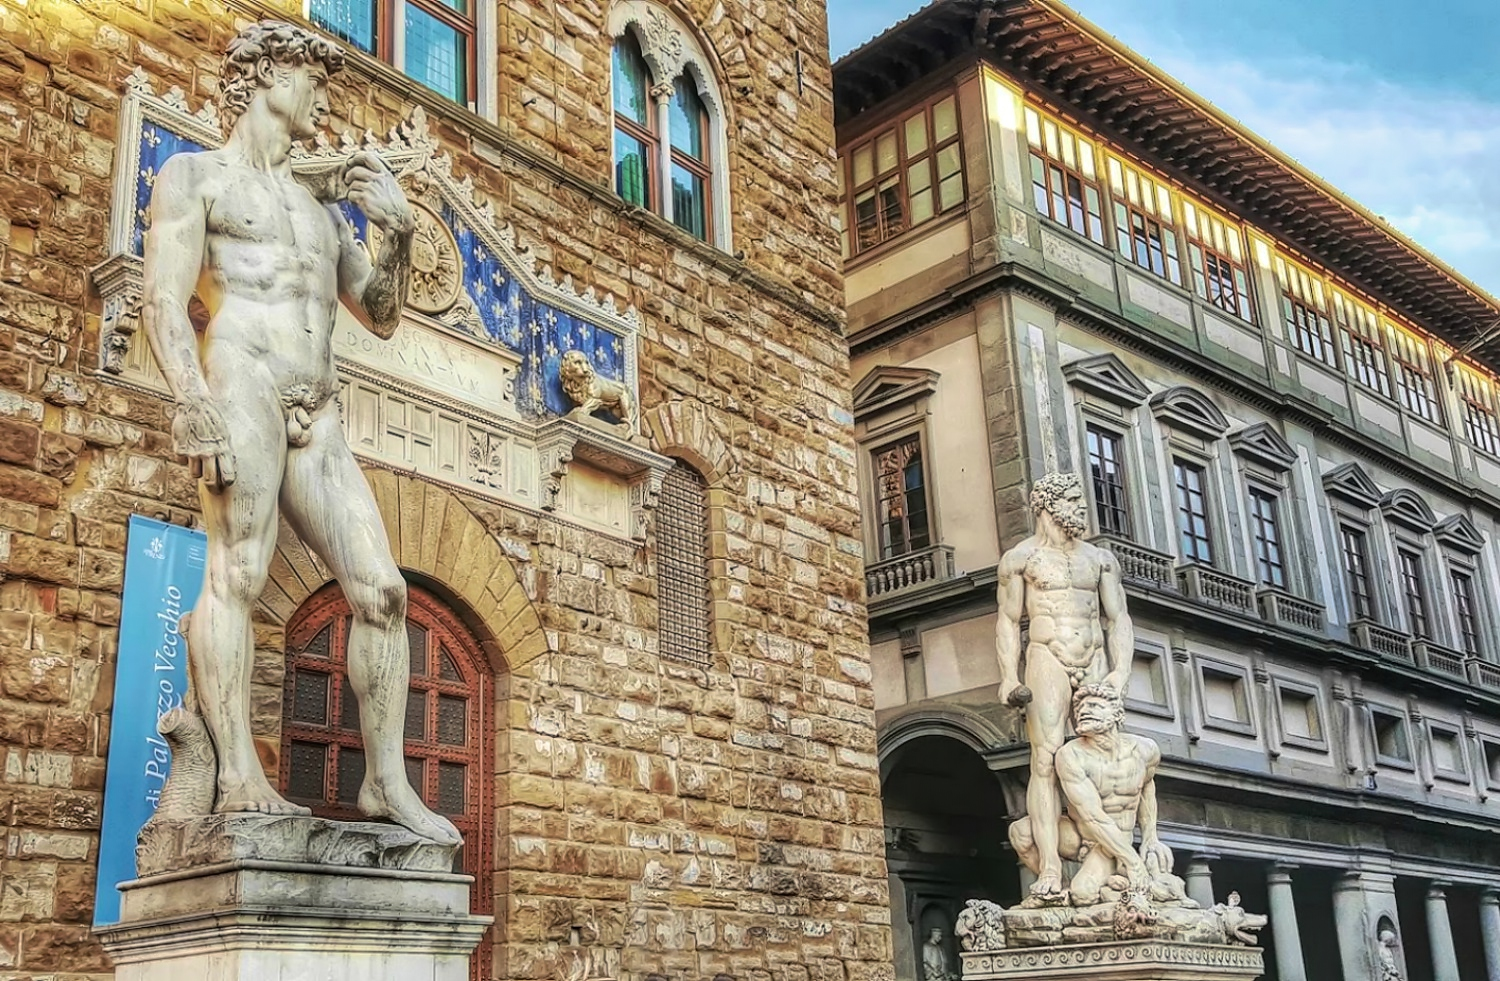 Piazza Signoria in Florence Tuscany.